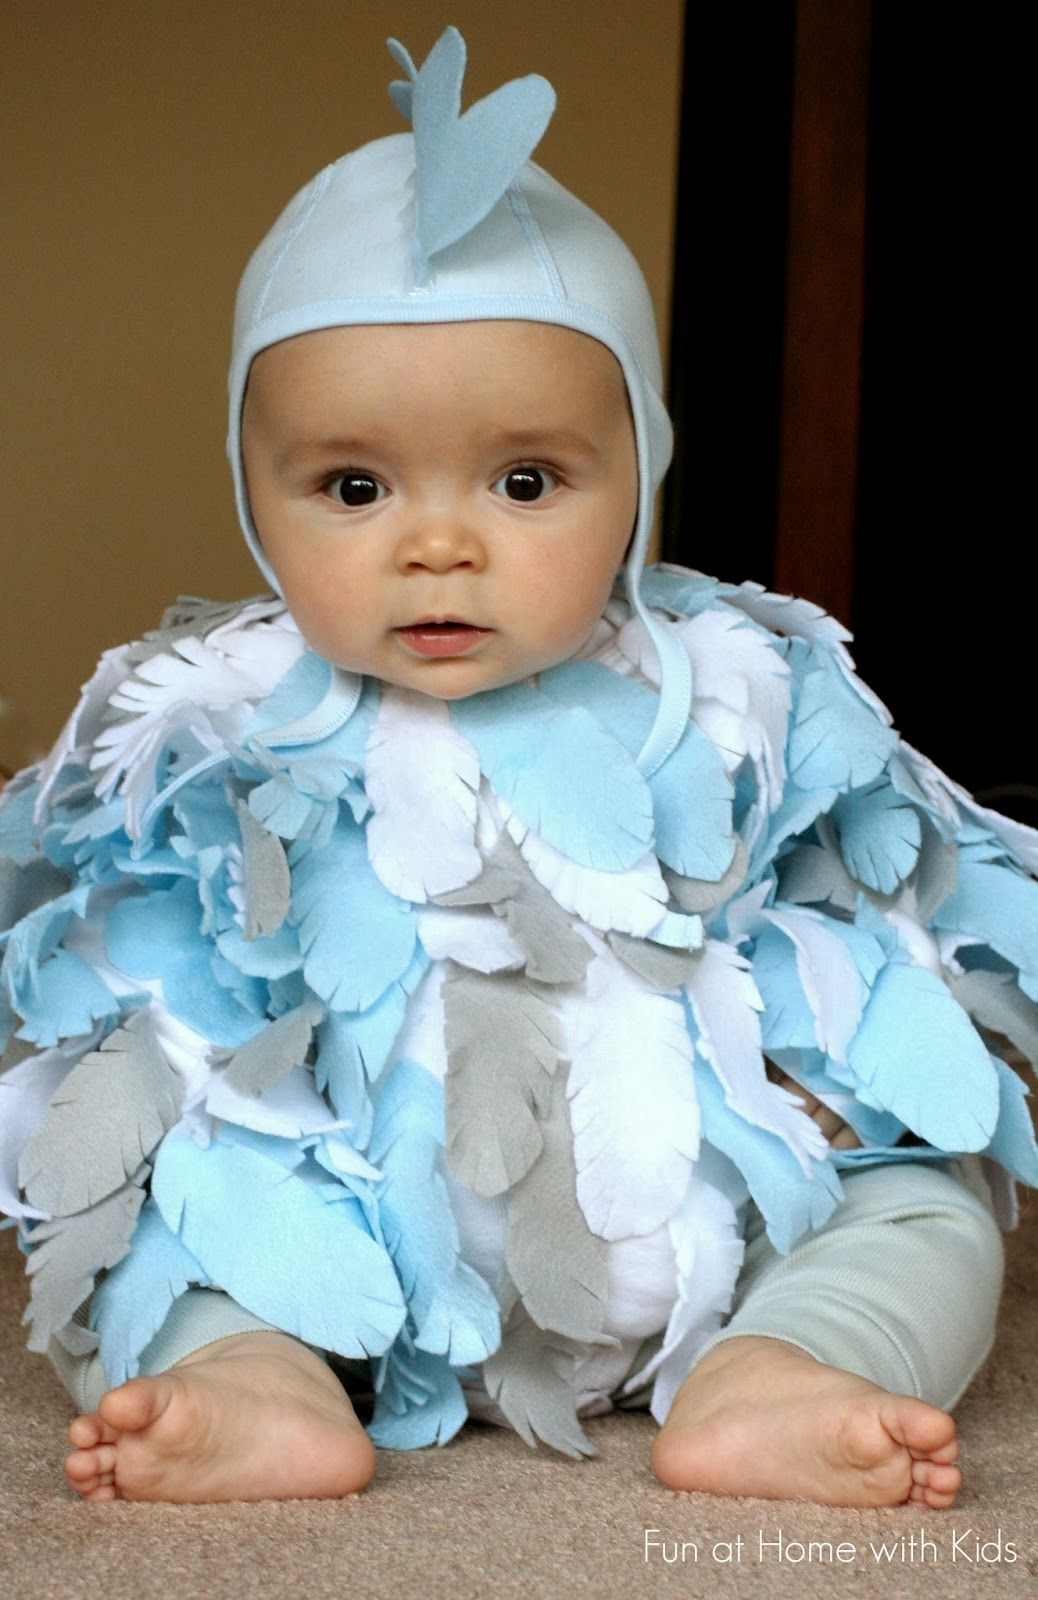 Cute DIY Baby Halloween Costume Ideas - Best Homemade Infant Halloween Costumes  sc 1 st  Redbook : baby costume diy  - Germanpascual.Com